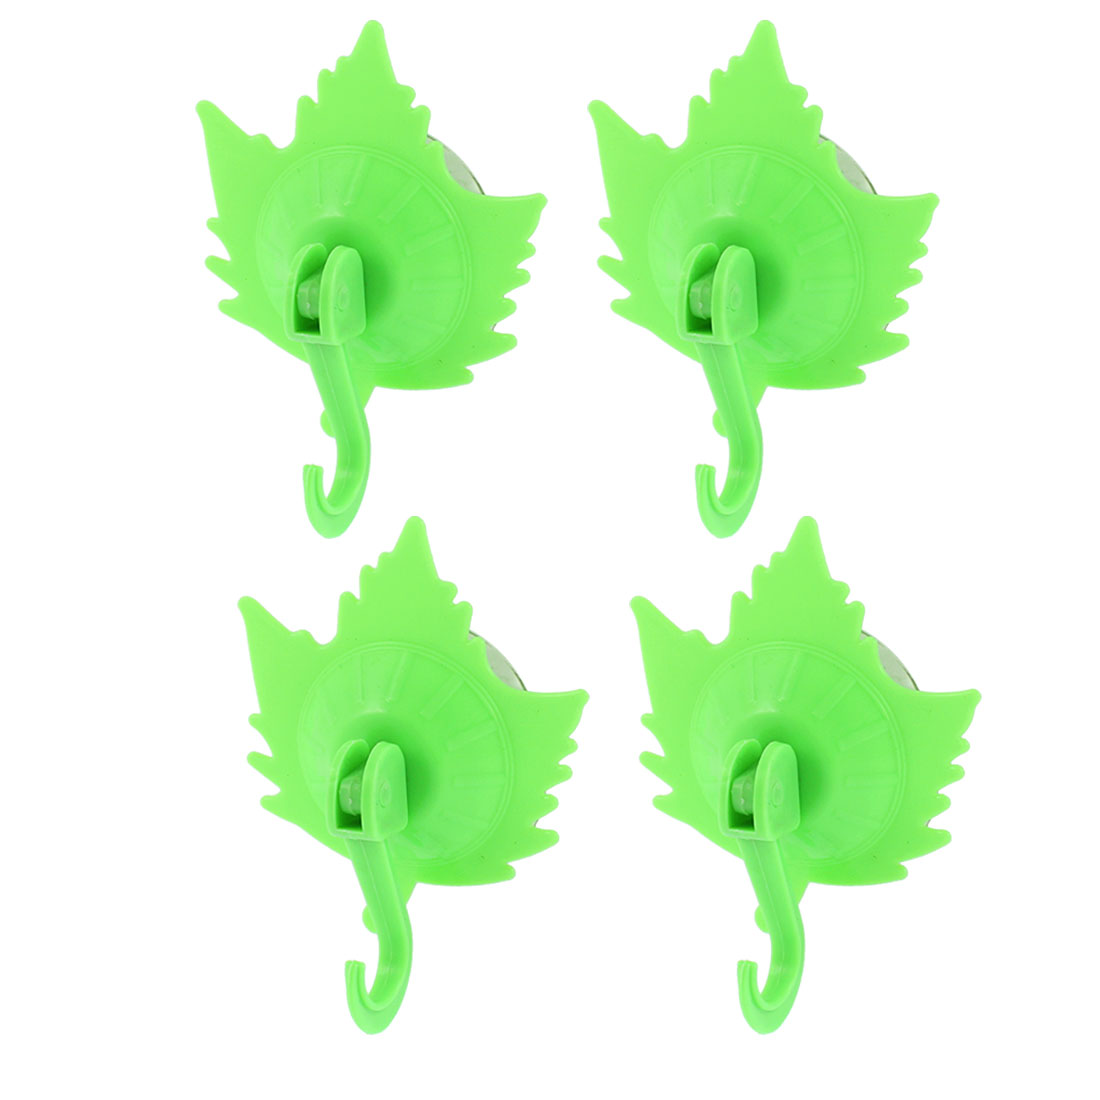 Household Towel Maple Leaf Design Suction Cup Hooks Wall Hangers Green 4pcs